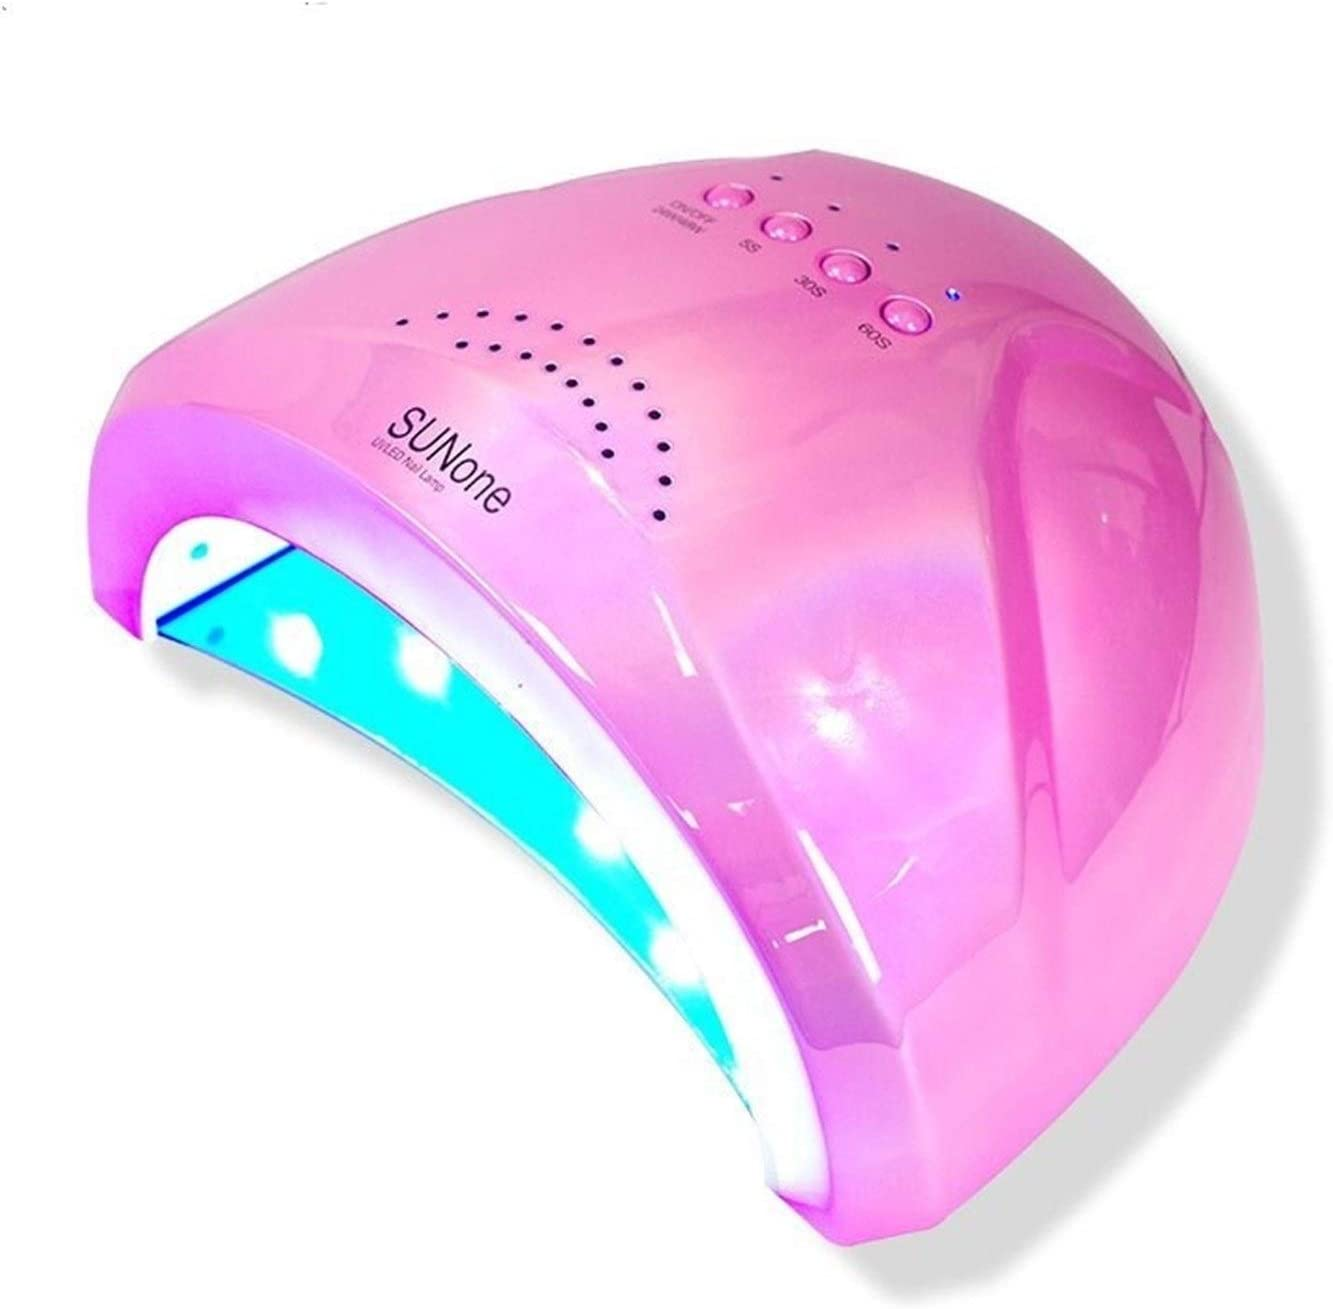 Amazon Com Nail Dryer Colorful Led Uv Nail Lamp For Nail Gel Polish Uv Led Nail Light Nail Dryer Uv Lamp Colorful 48w Sunone Uv Led Lamp For Nails Color Pink Lamp